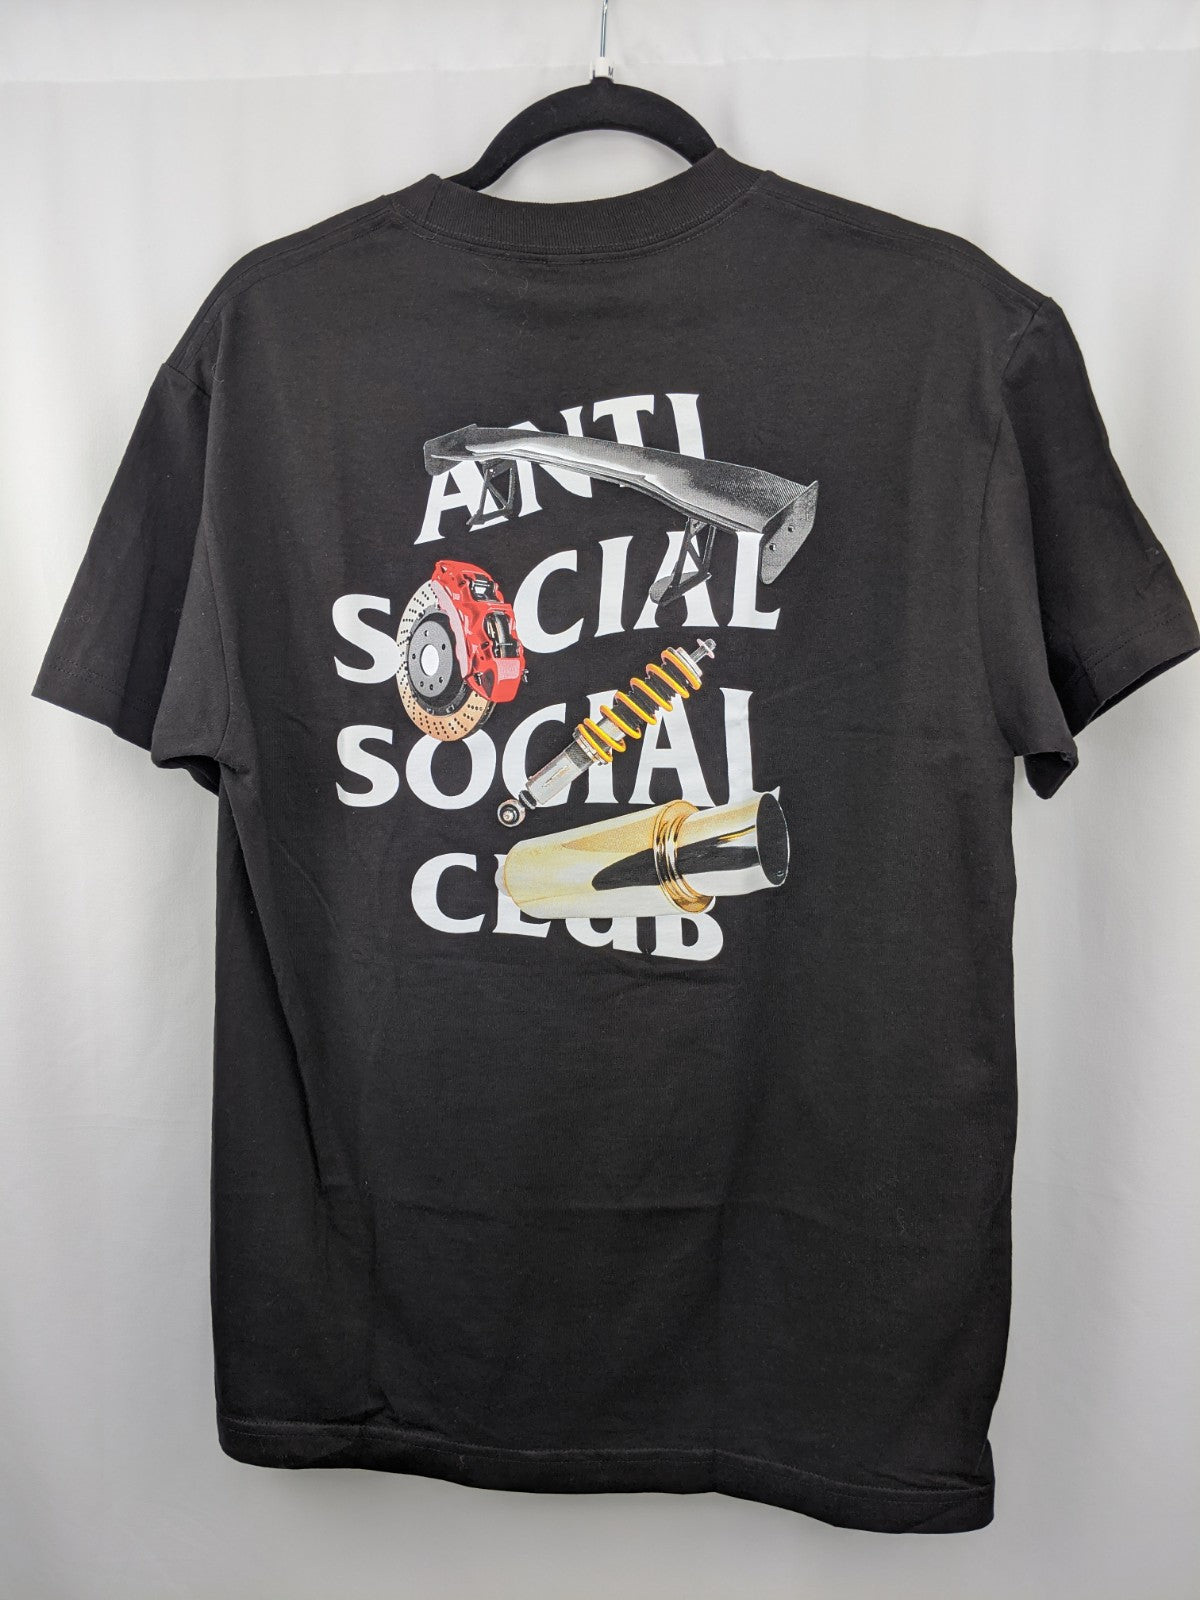 Anti Social Club Riceroni Black Tee